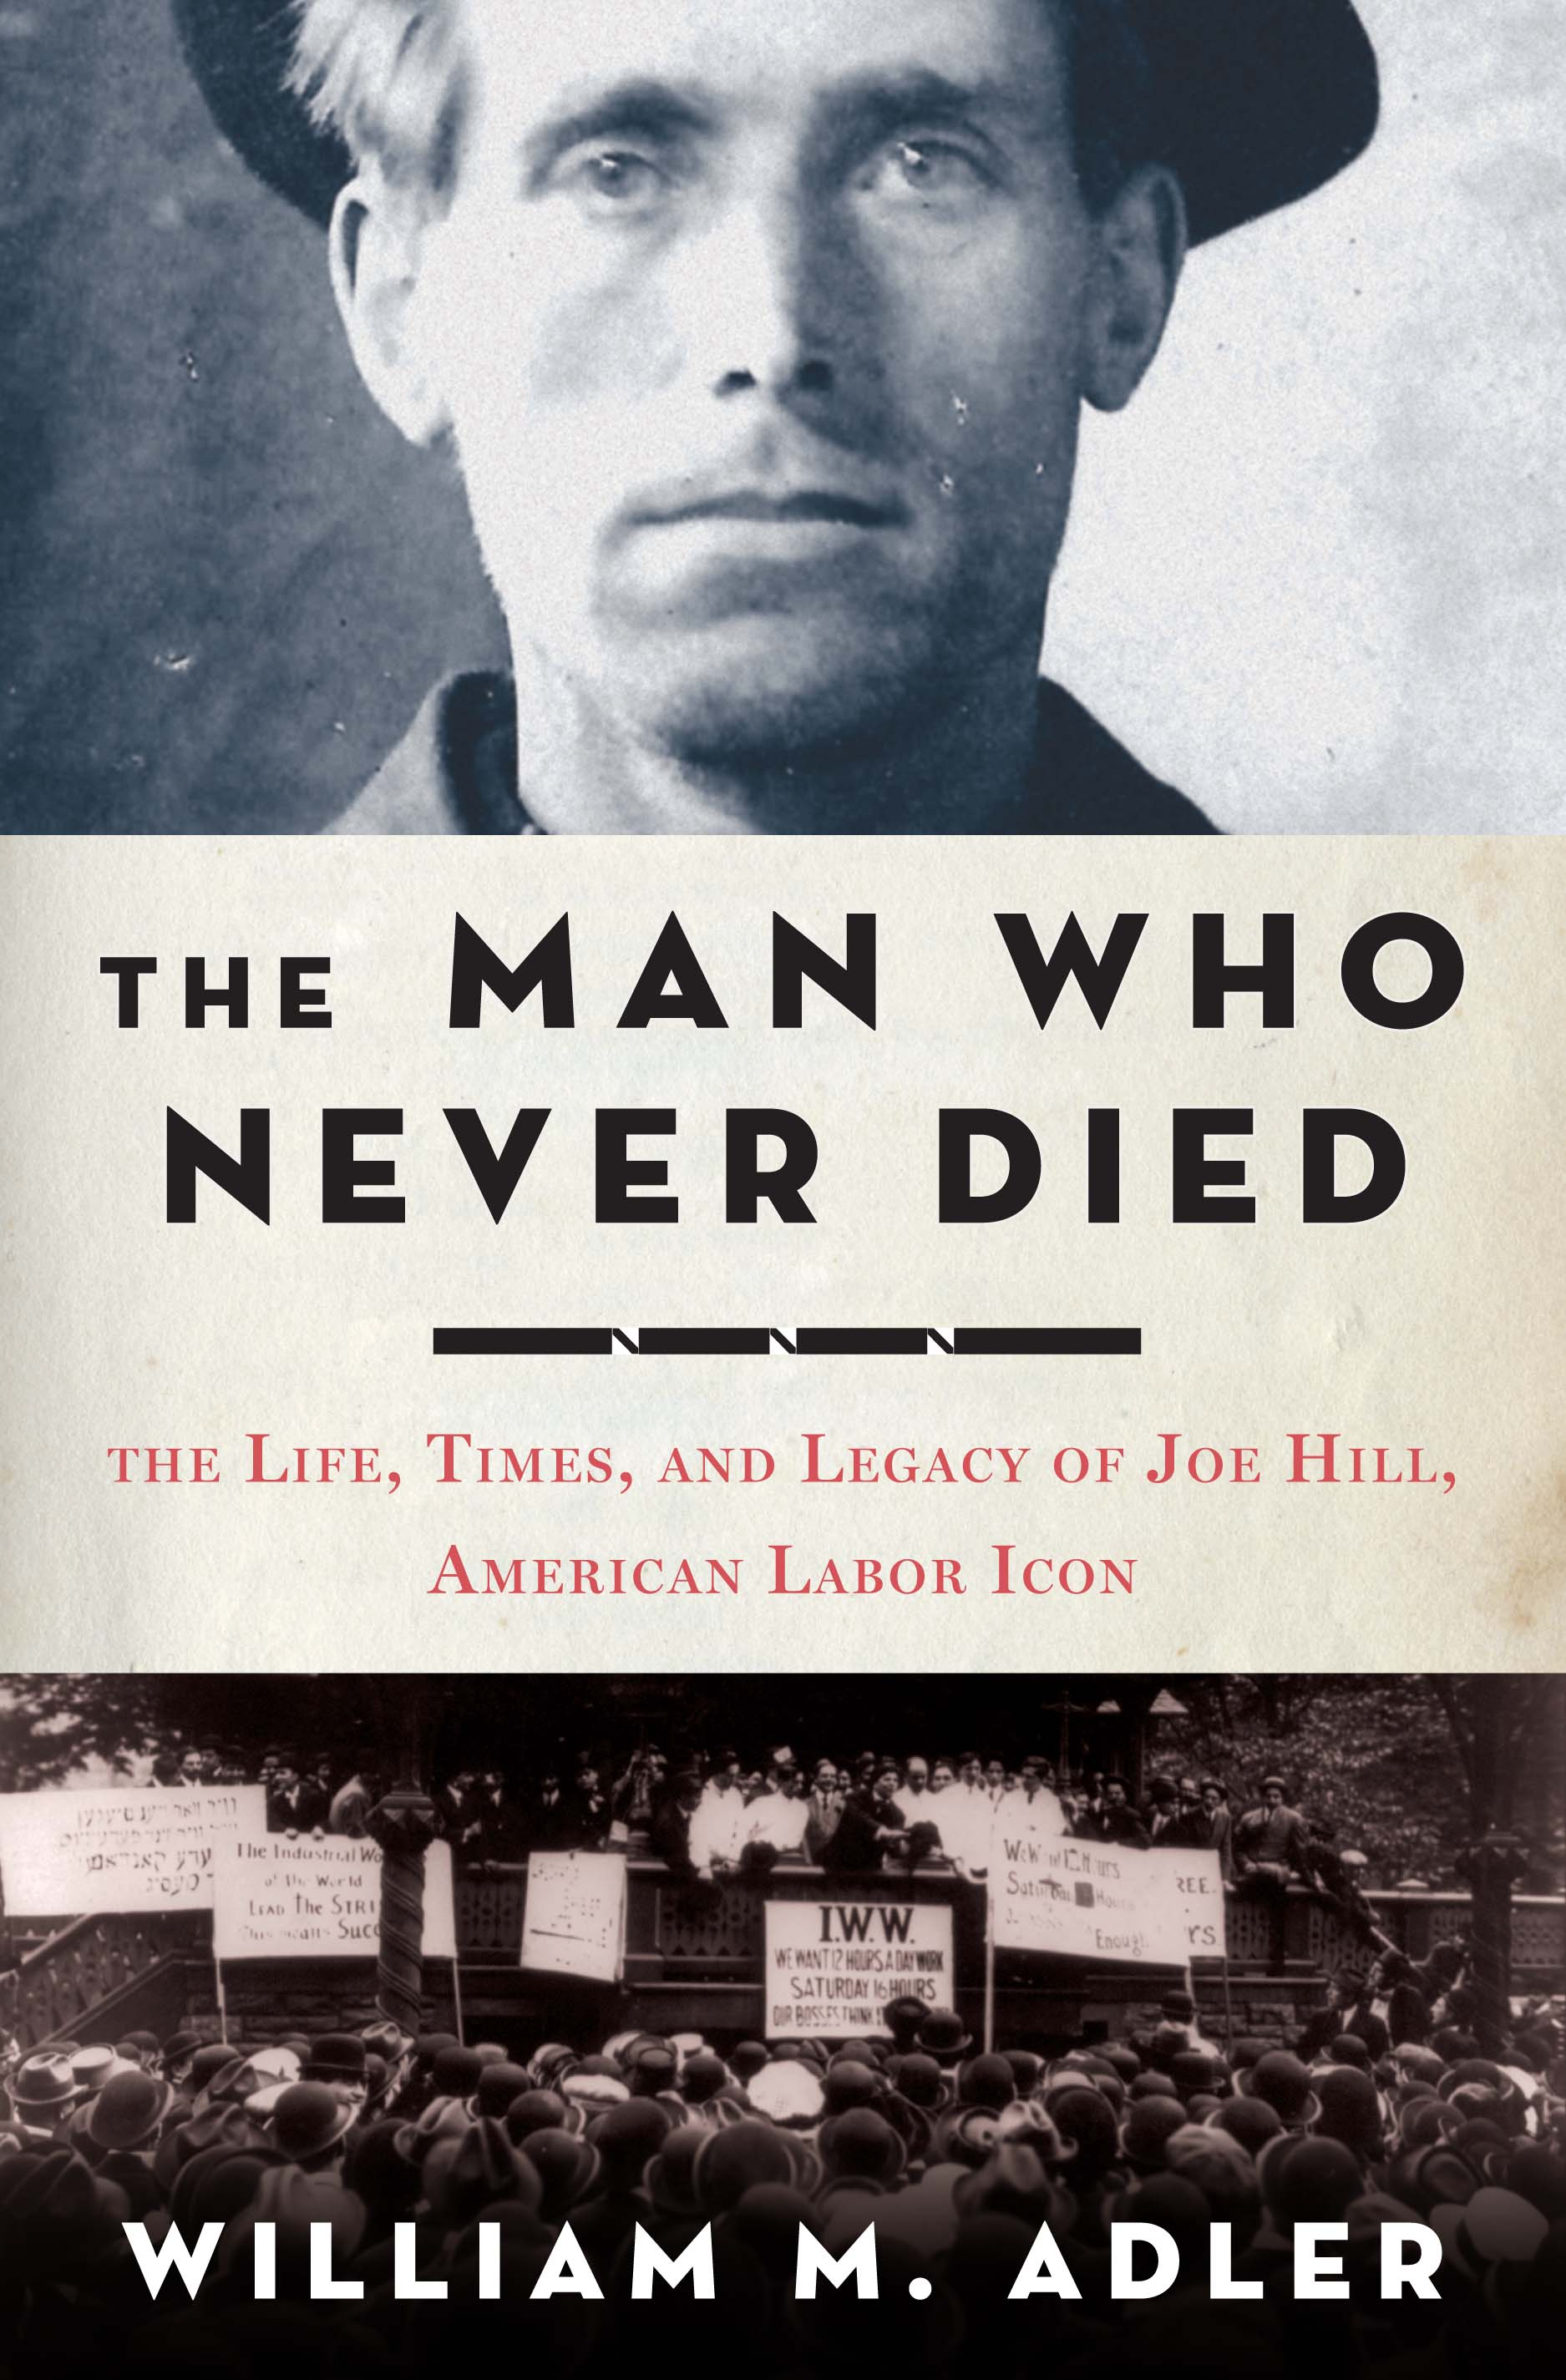 The Man Who Never Died, the Life, Times, and Legacy of Joe Hill, American Labor Icon